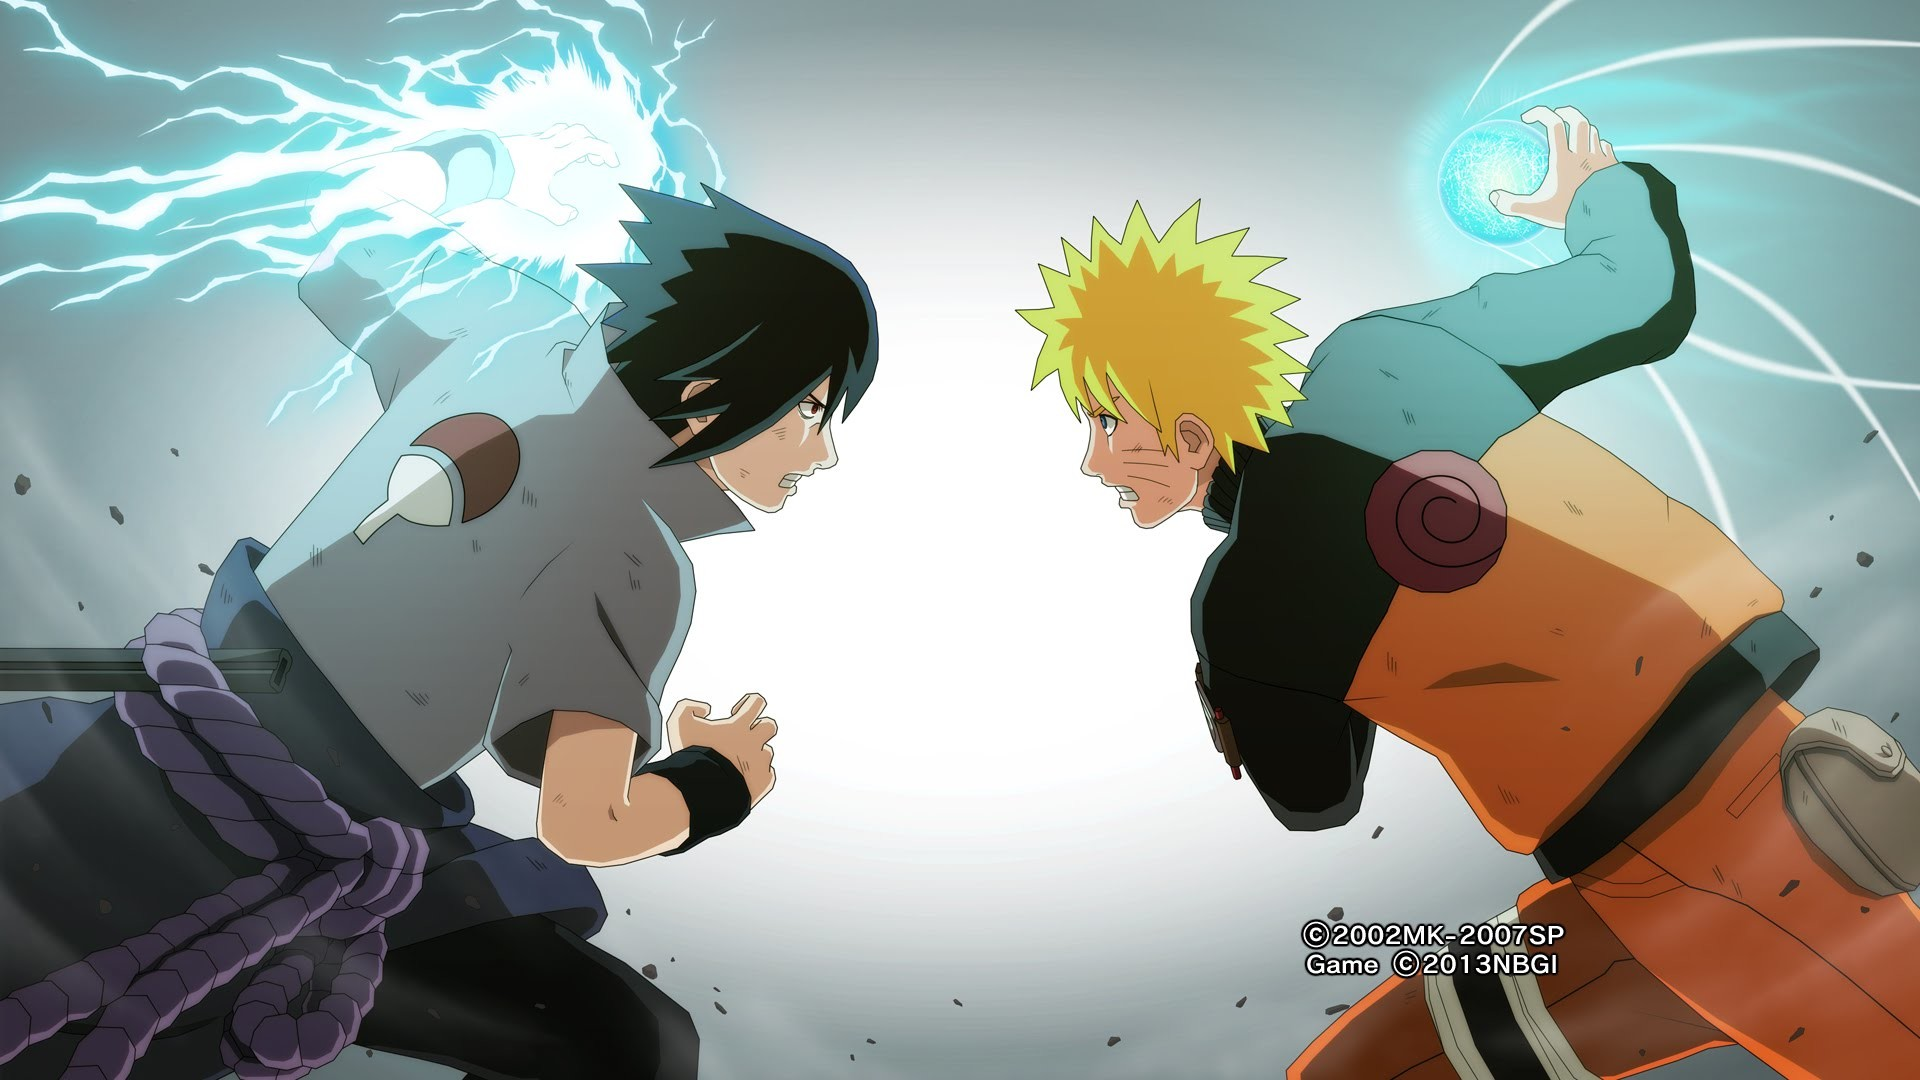 naruto vs sasuke hd wallpaper 68 images